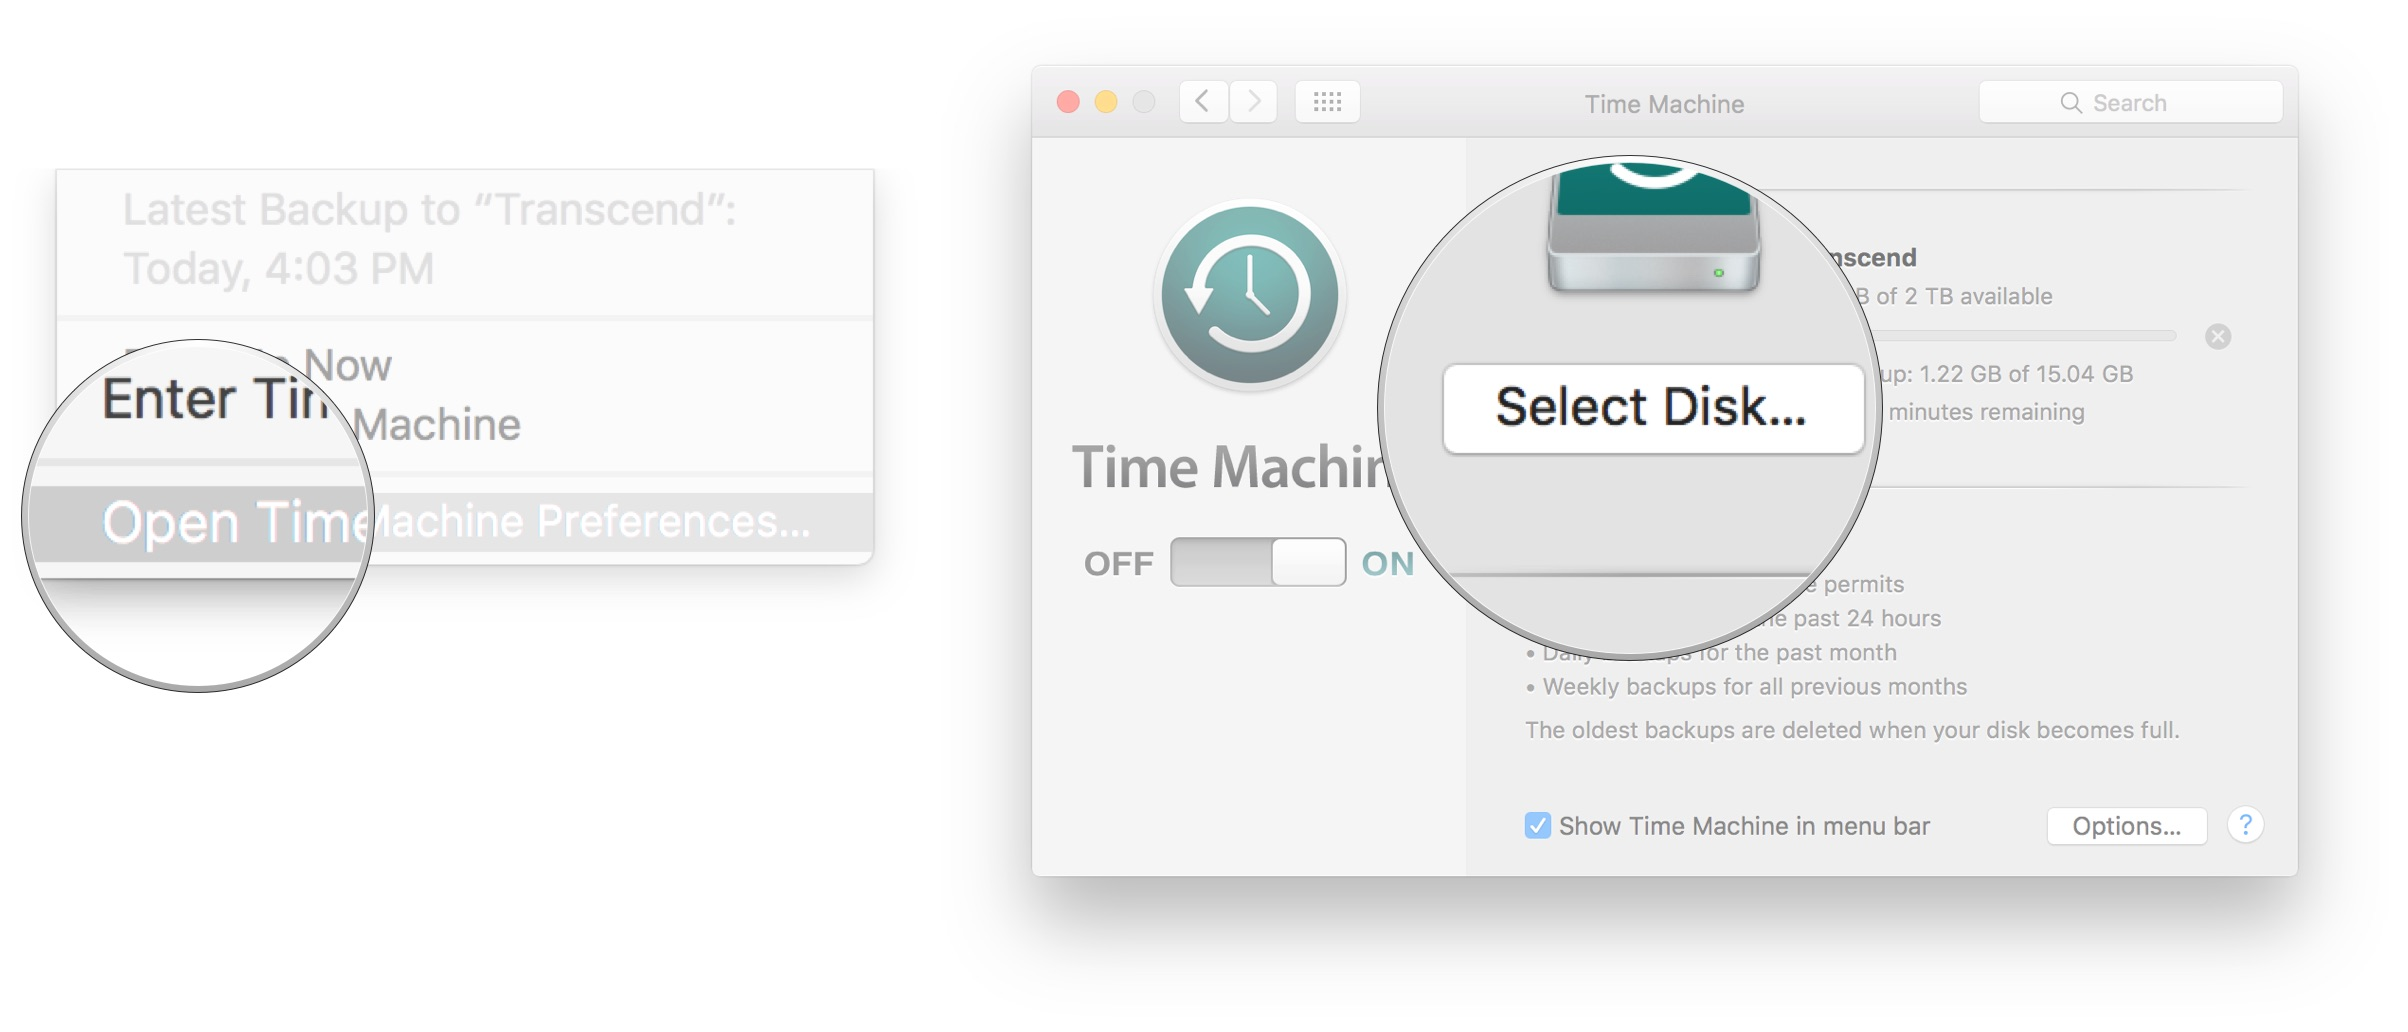 How to Use Time Machine Backup with Multiple Drives and the Cloud